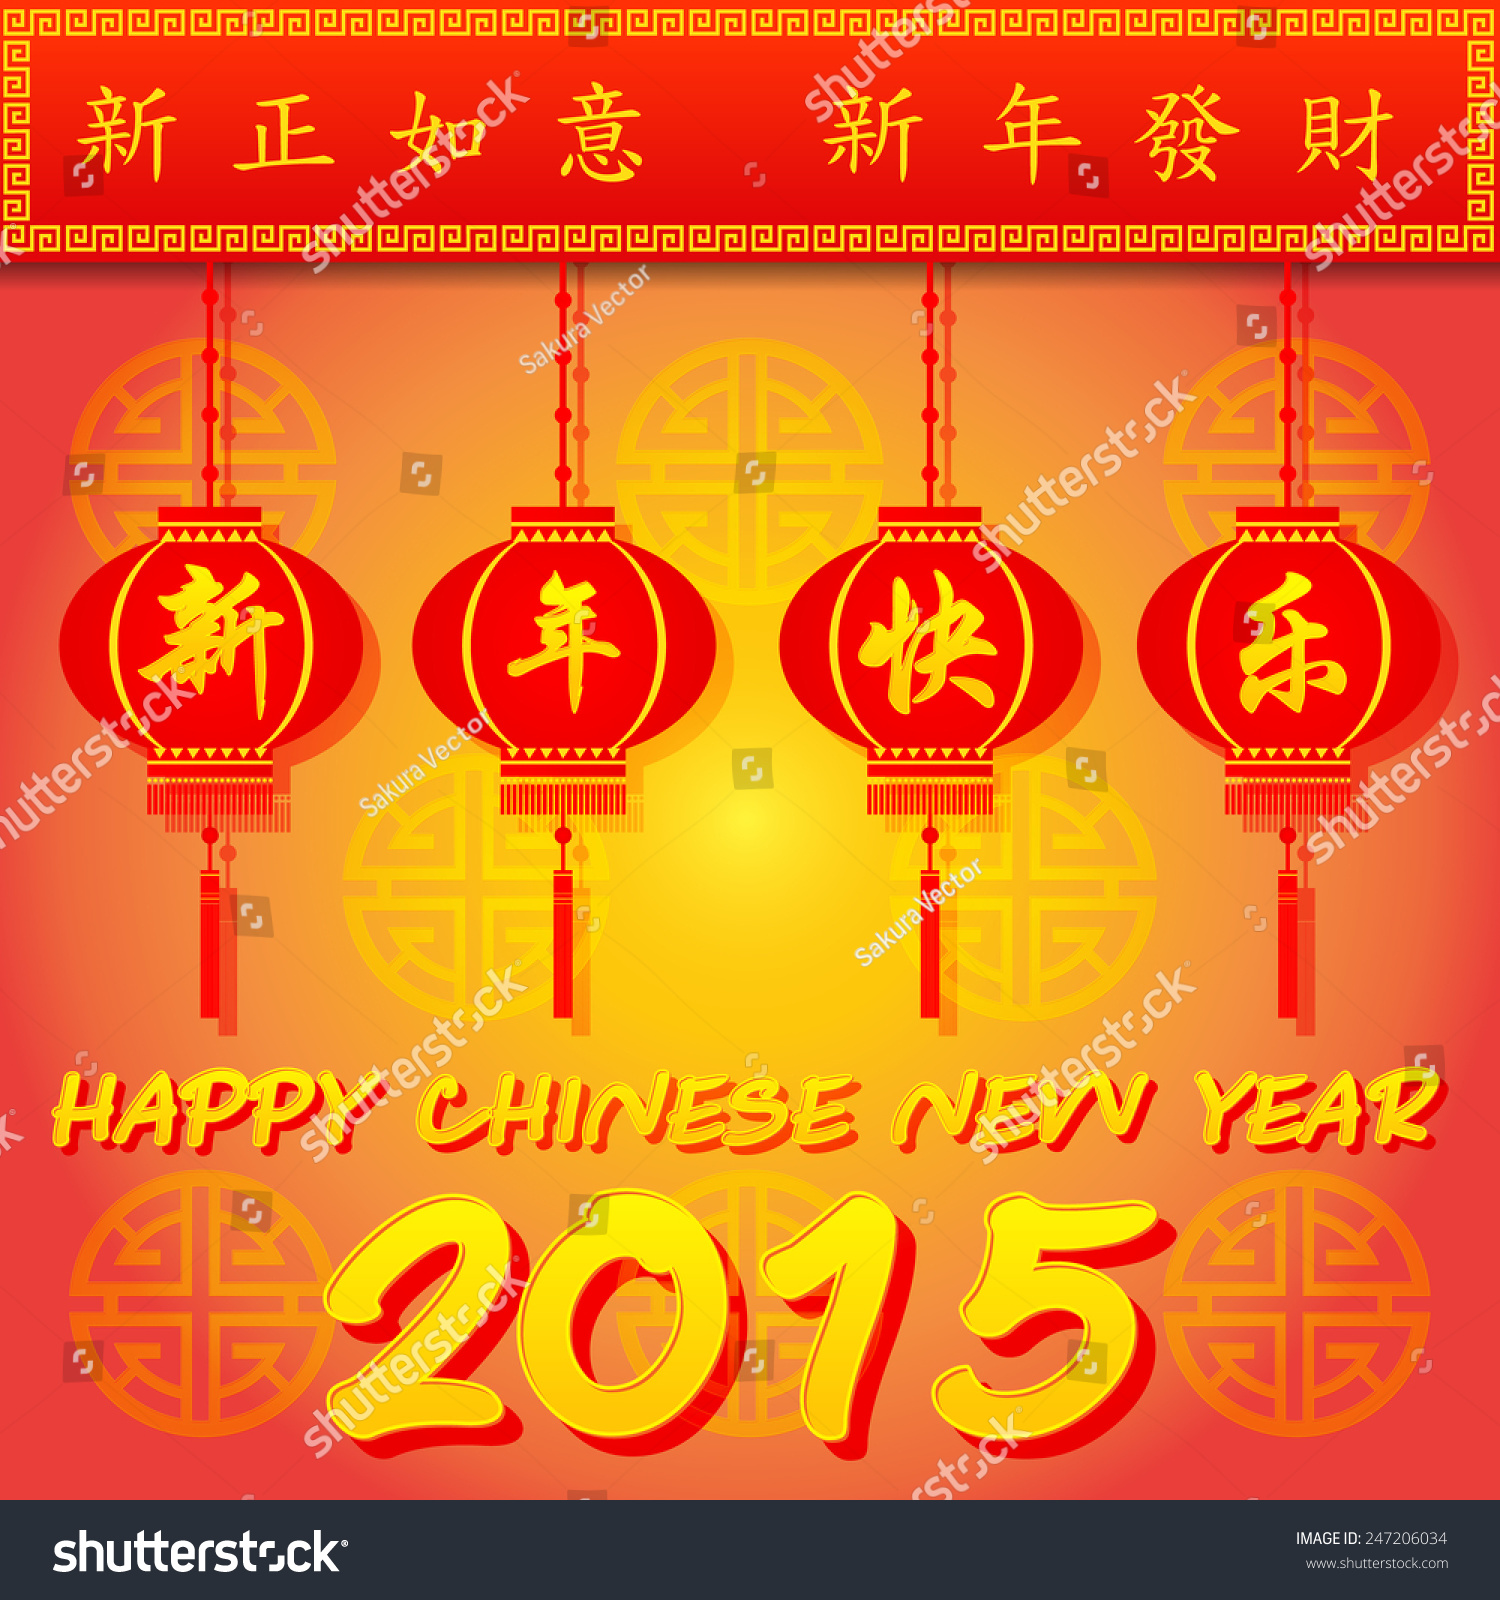 chinese new year background designs happy chinese new year 2015 - Chinese New Year Images 2015